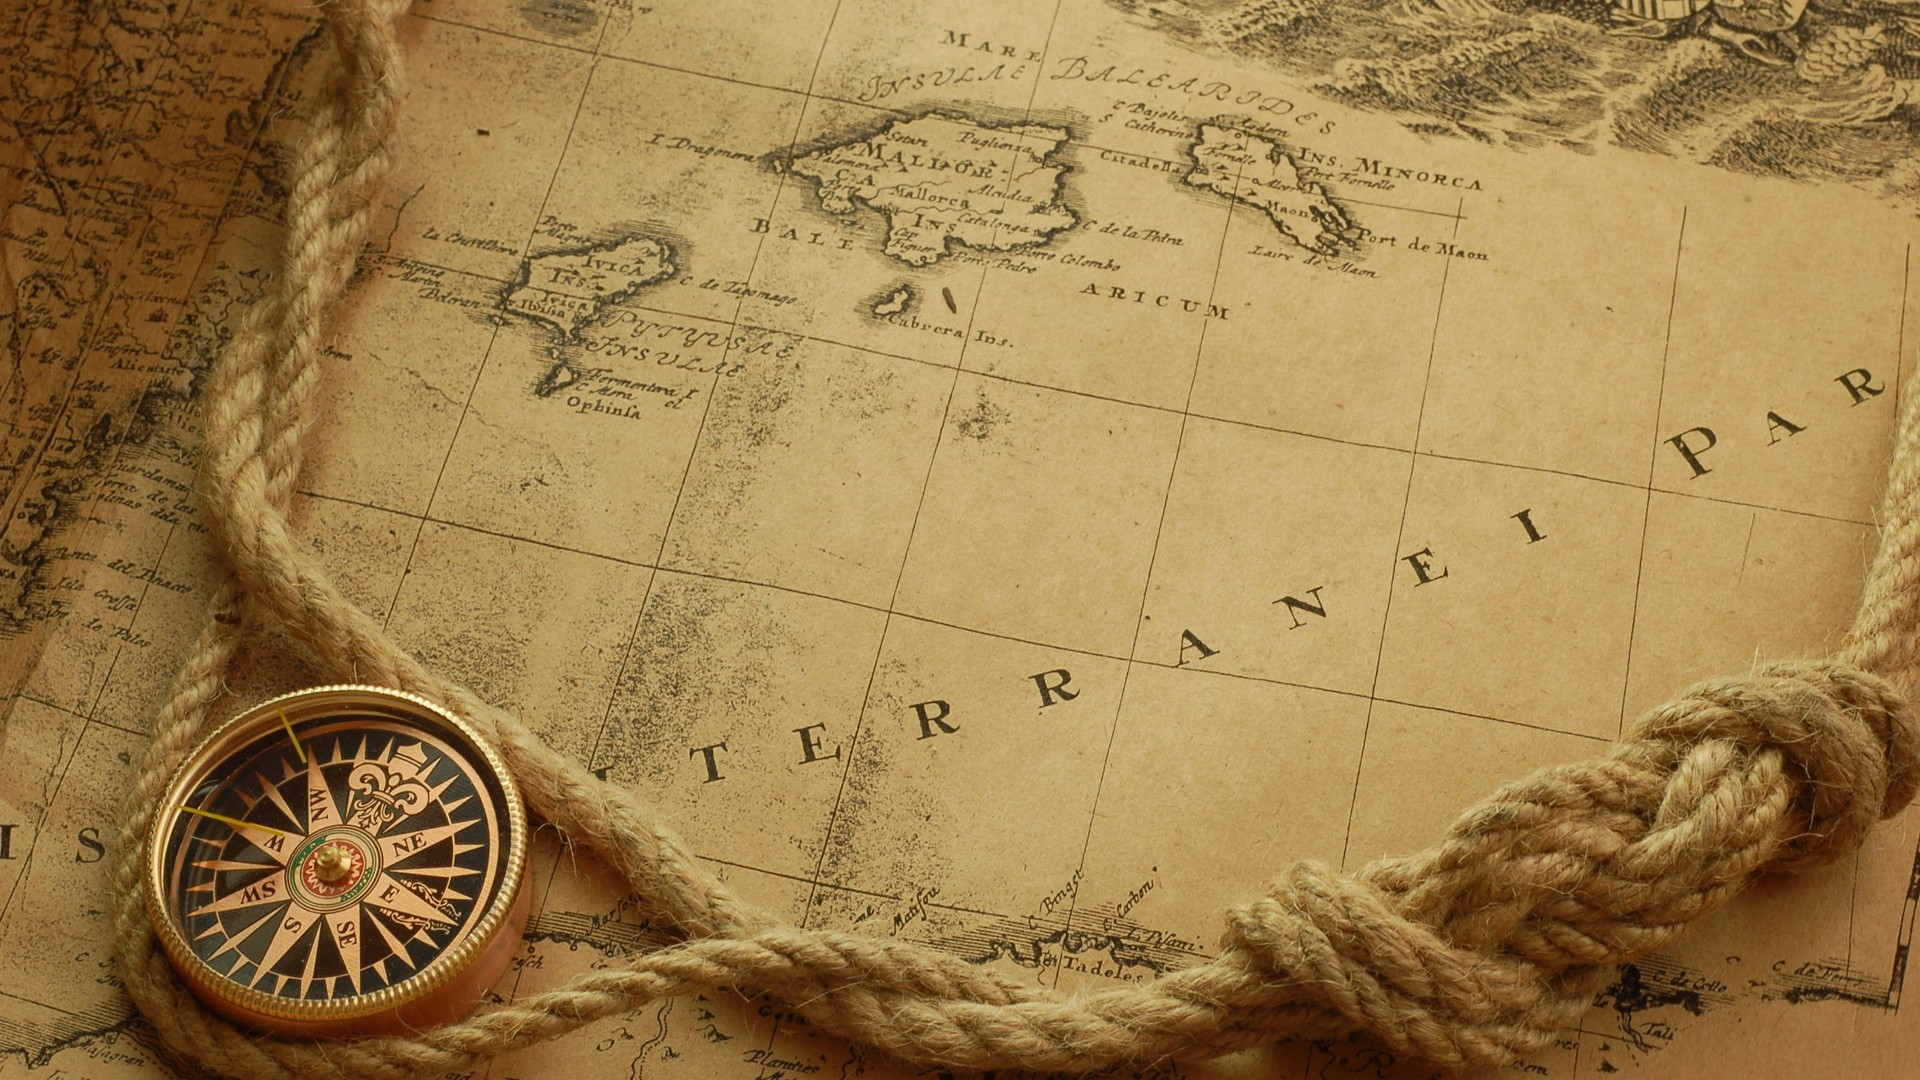 early maps hd wallpaper - photo #47